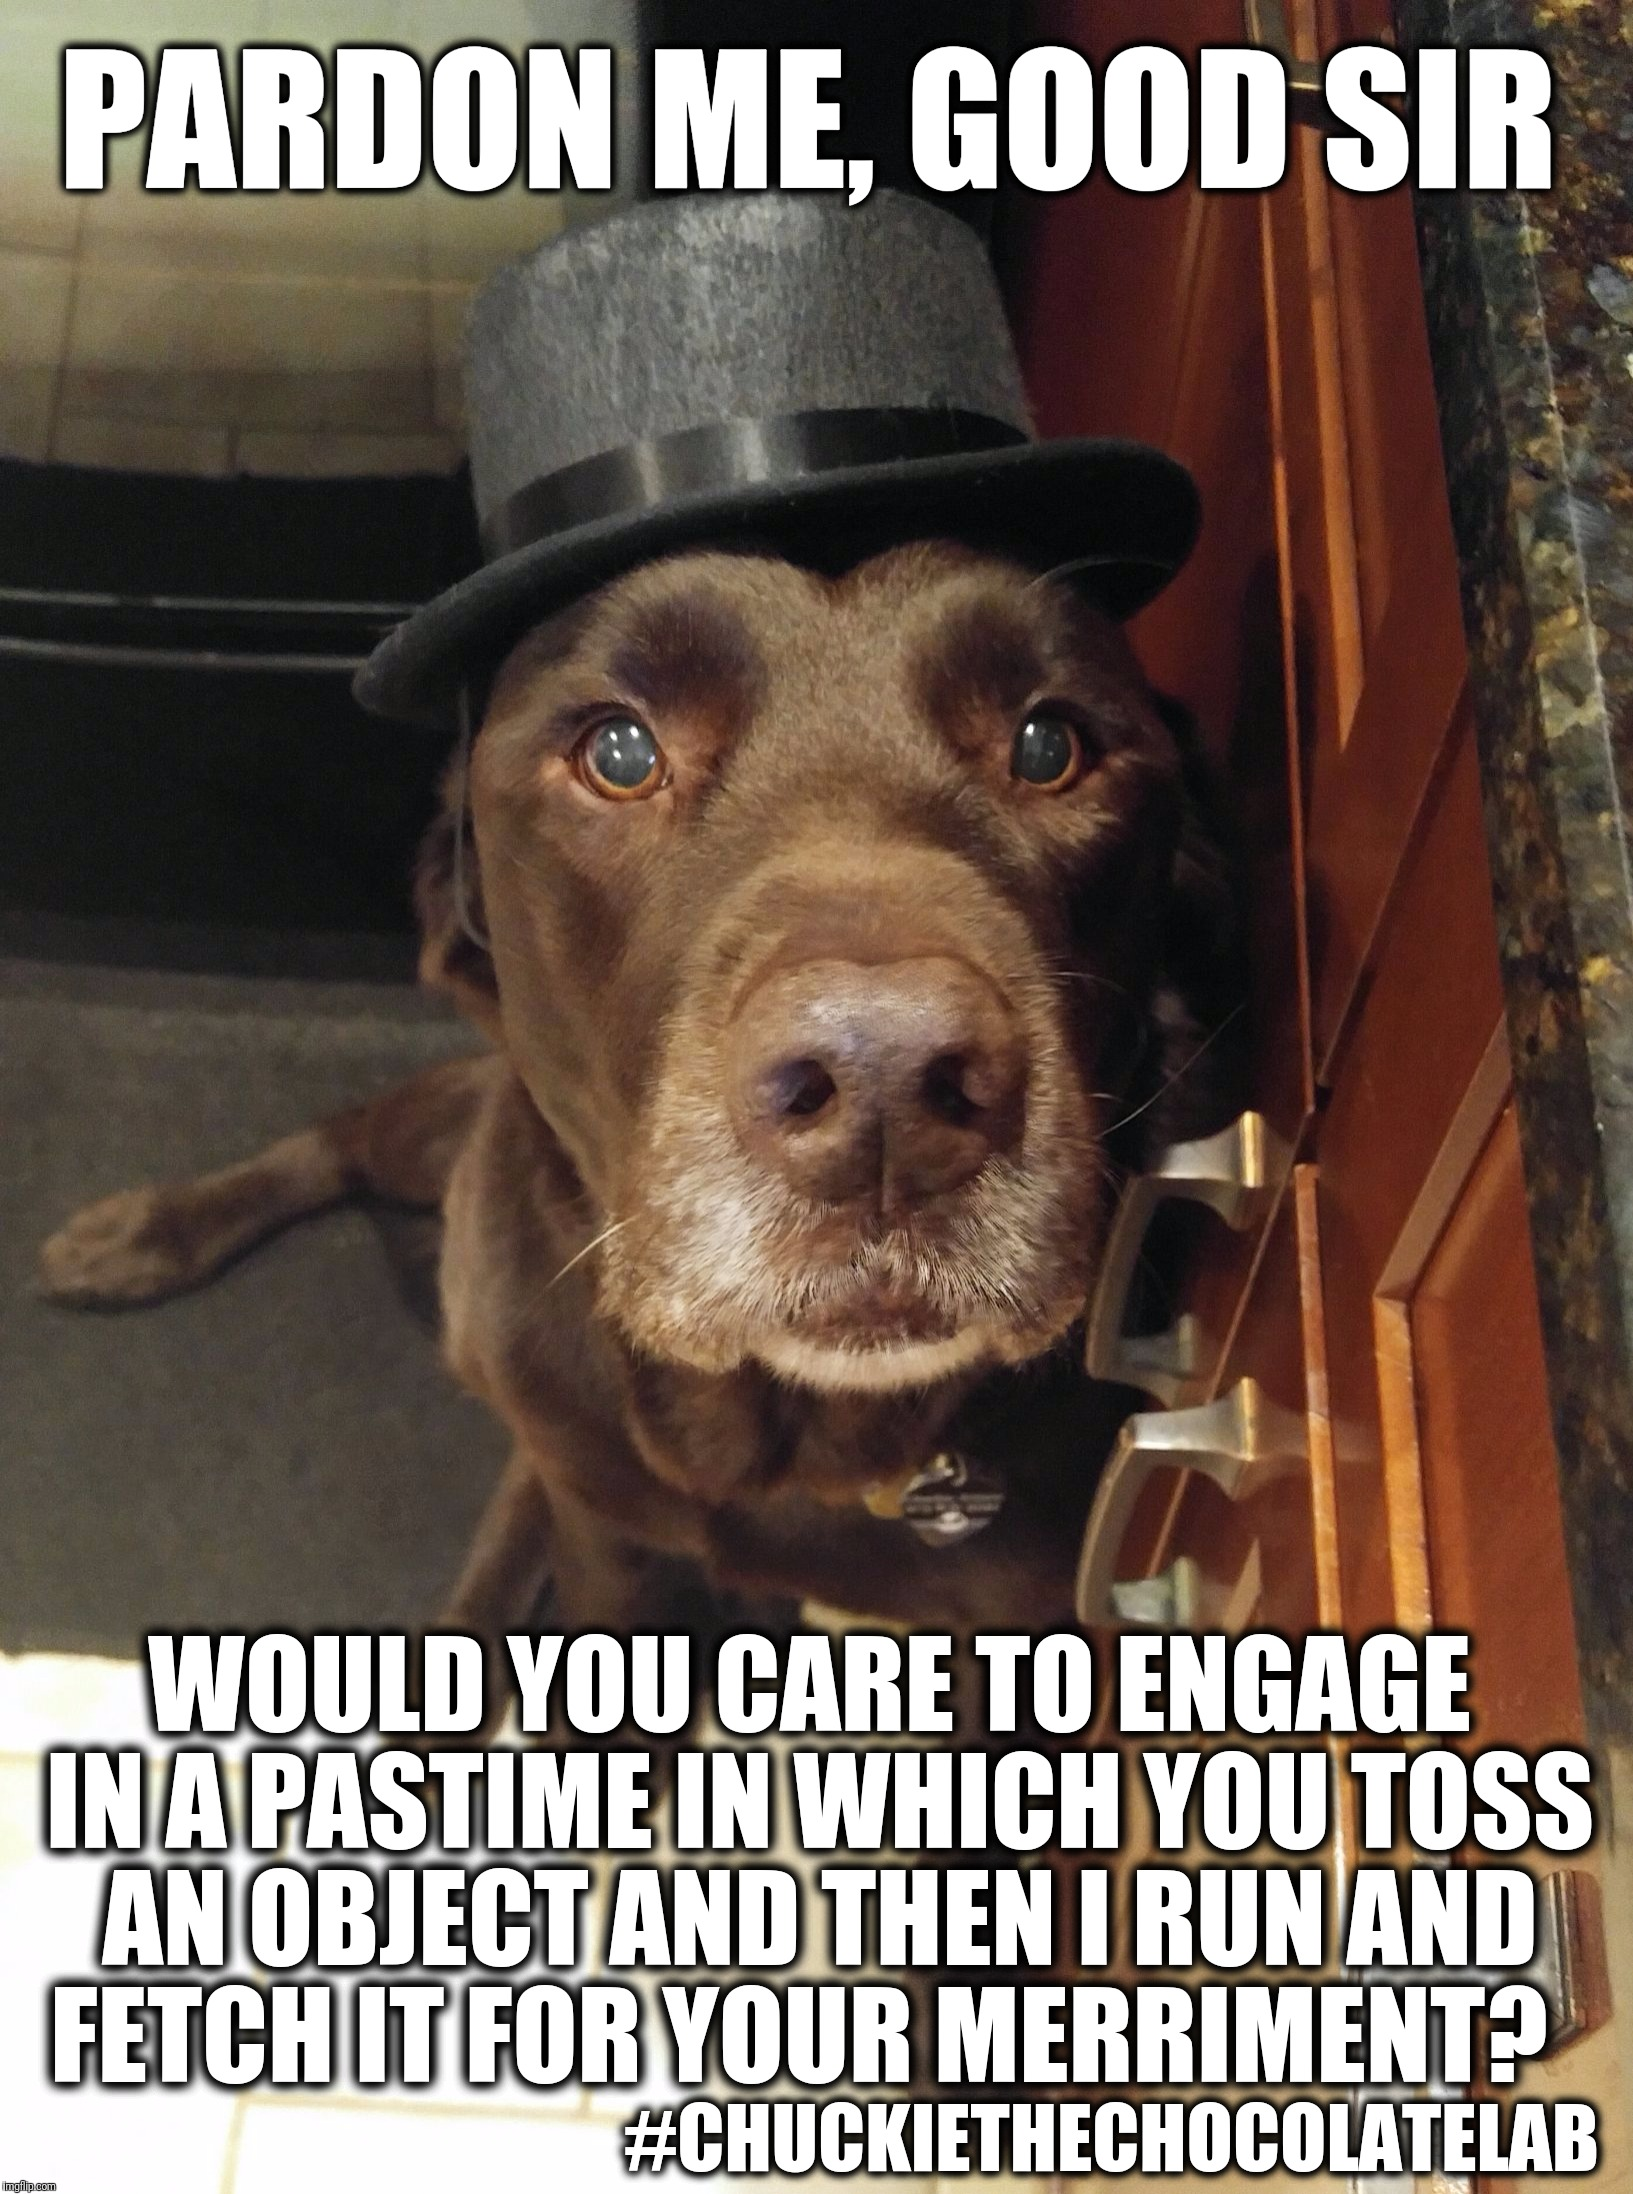 Pardon me, good sir | PARDON ME, GOOD SIR WOULD YOU CARE TO ENGAGE IN A PASTIME IN WHICH YOU TOSS AN OBJECT AND THEN I RUN AND FETCH IT FOR YOUR MERRIMENT? #CHUCK | image tagged in chuckie the chocolate lab,pardon me,funny,funny dogs,labrador,fancy hat | made w/ Imgflip meme maker